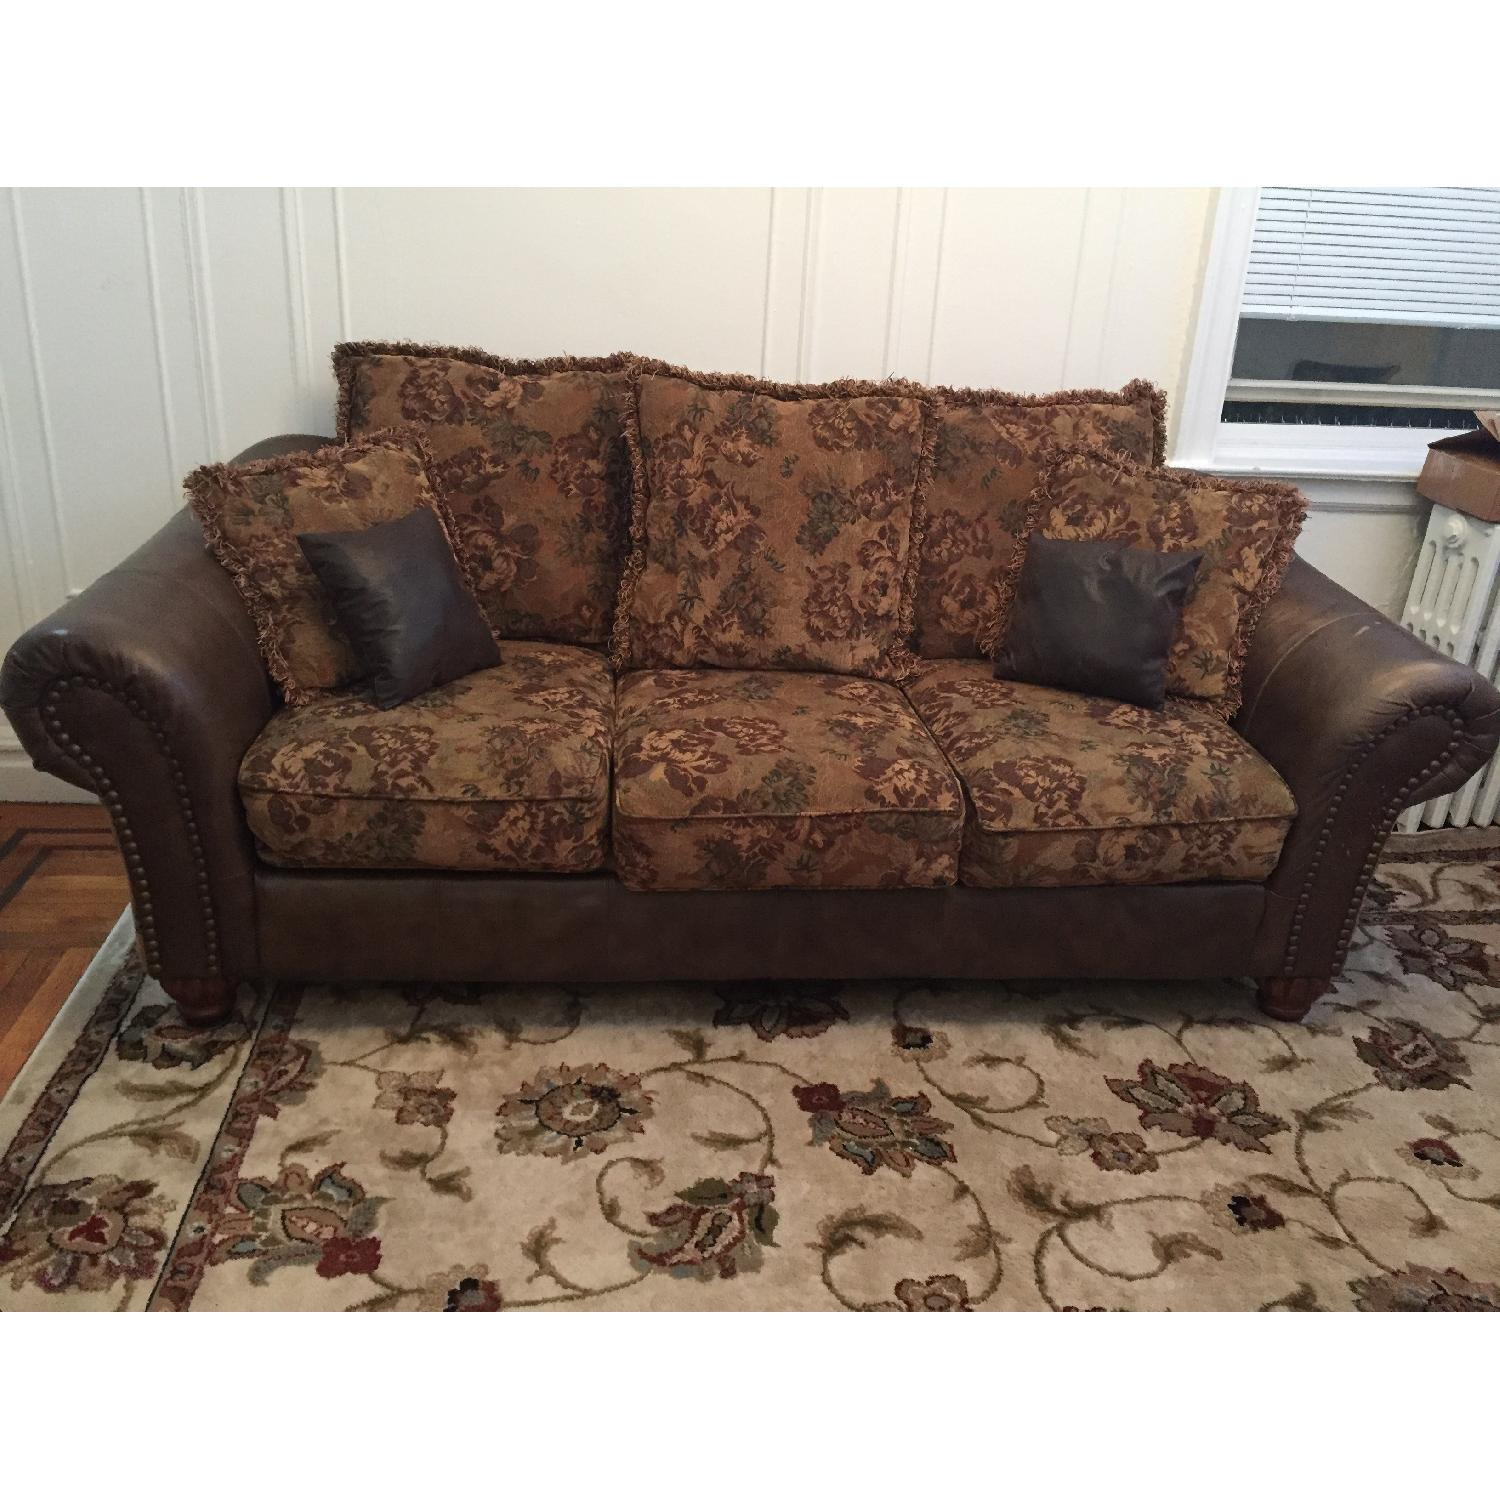 Ashley 3-Seater Leather Upholstered Couch - image-1